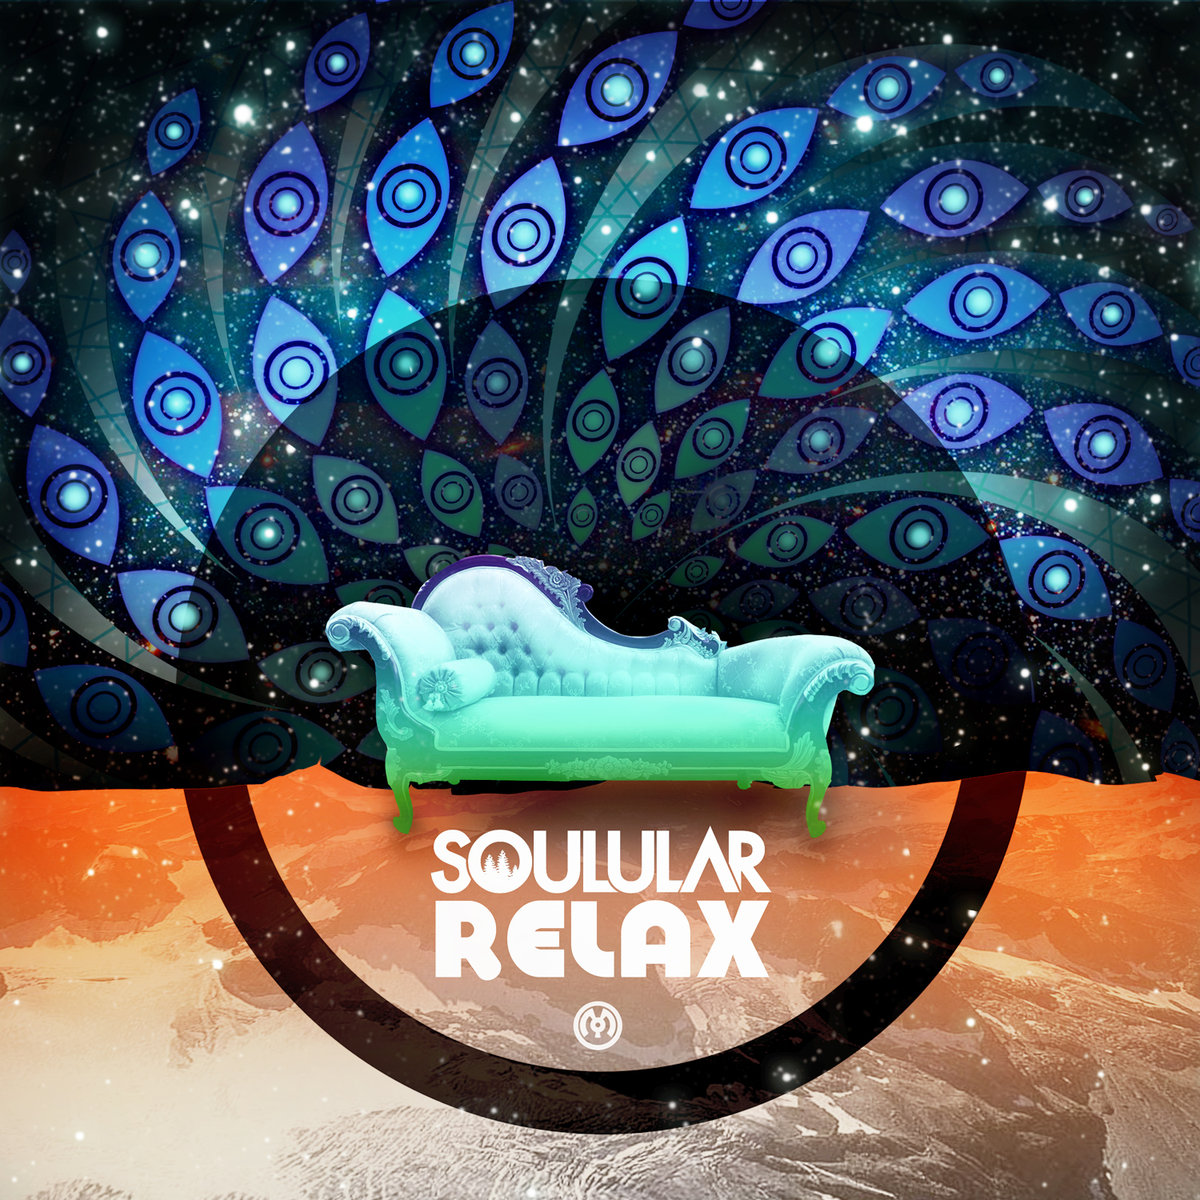 Soulular - Of The Moon @ 'Relax' album (electronic, dubstep)